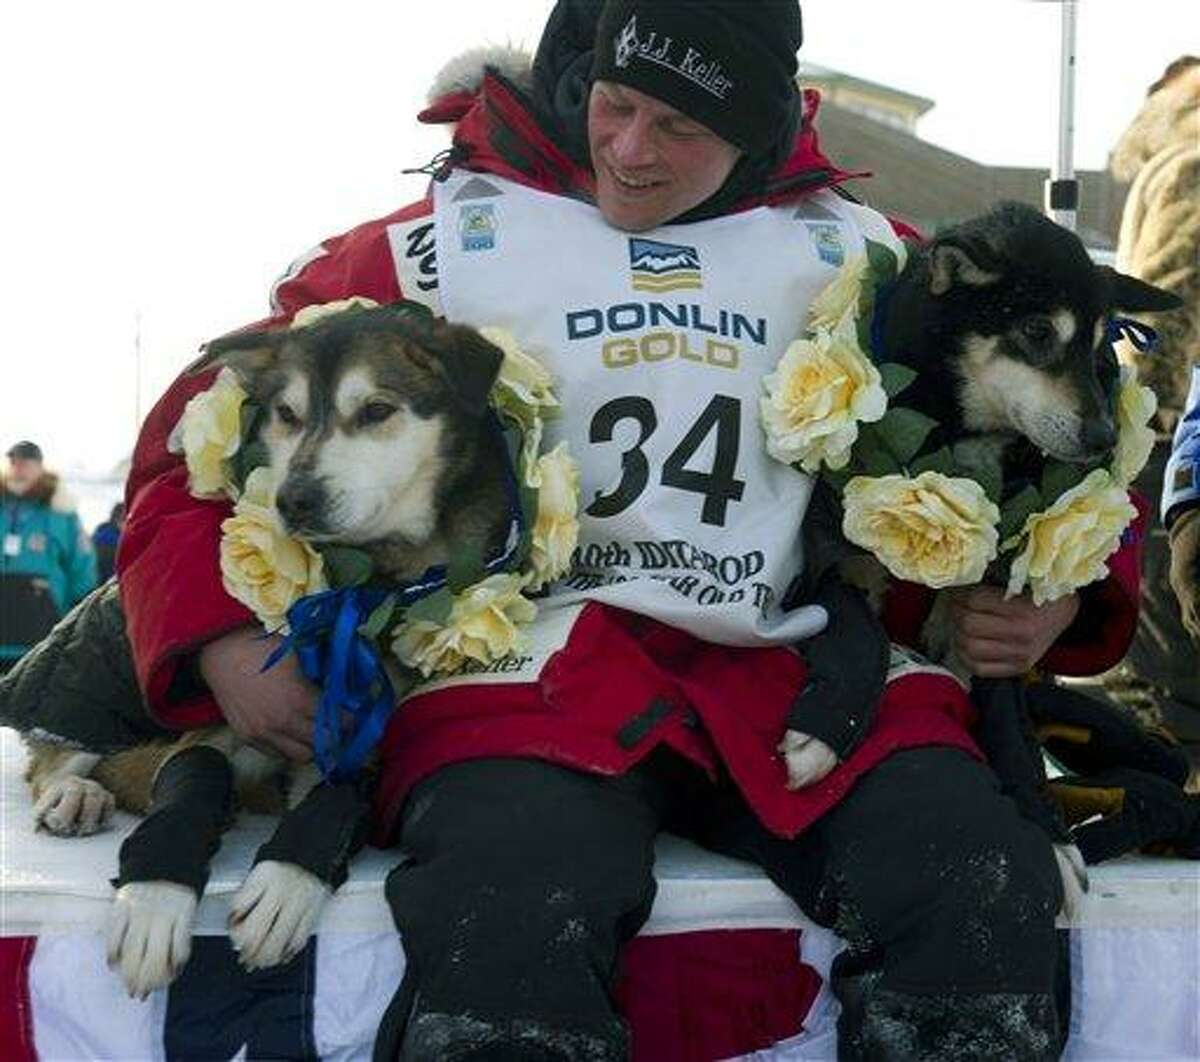 Dallas Seavey holds his leaders, Diesel, left, and Guiness after he arrived at the finish line to claim victory in the Iditarod Trail Sled Dog Race in Nome, Alaska, Tuesday. Seavey is the youngest musher to win the nearly 1,000-mile race across Alaska. Associated Press